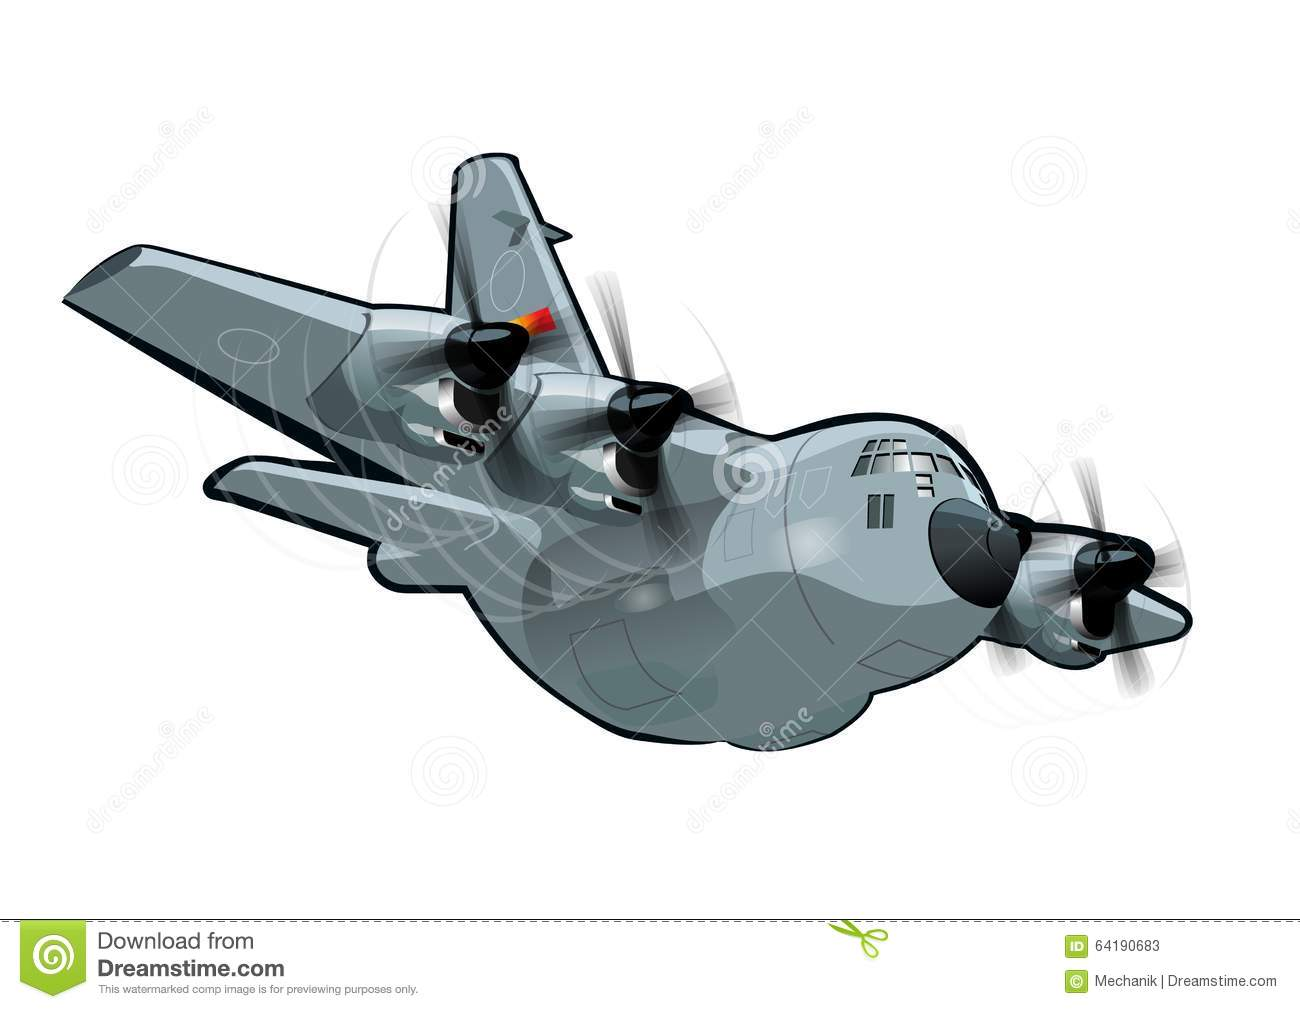 Clipart c-130 clipart freeuse stock C 130 clipart 6 » Clipart Station clipart freeuse stock